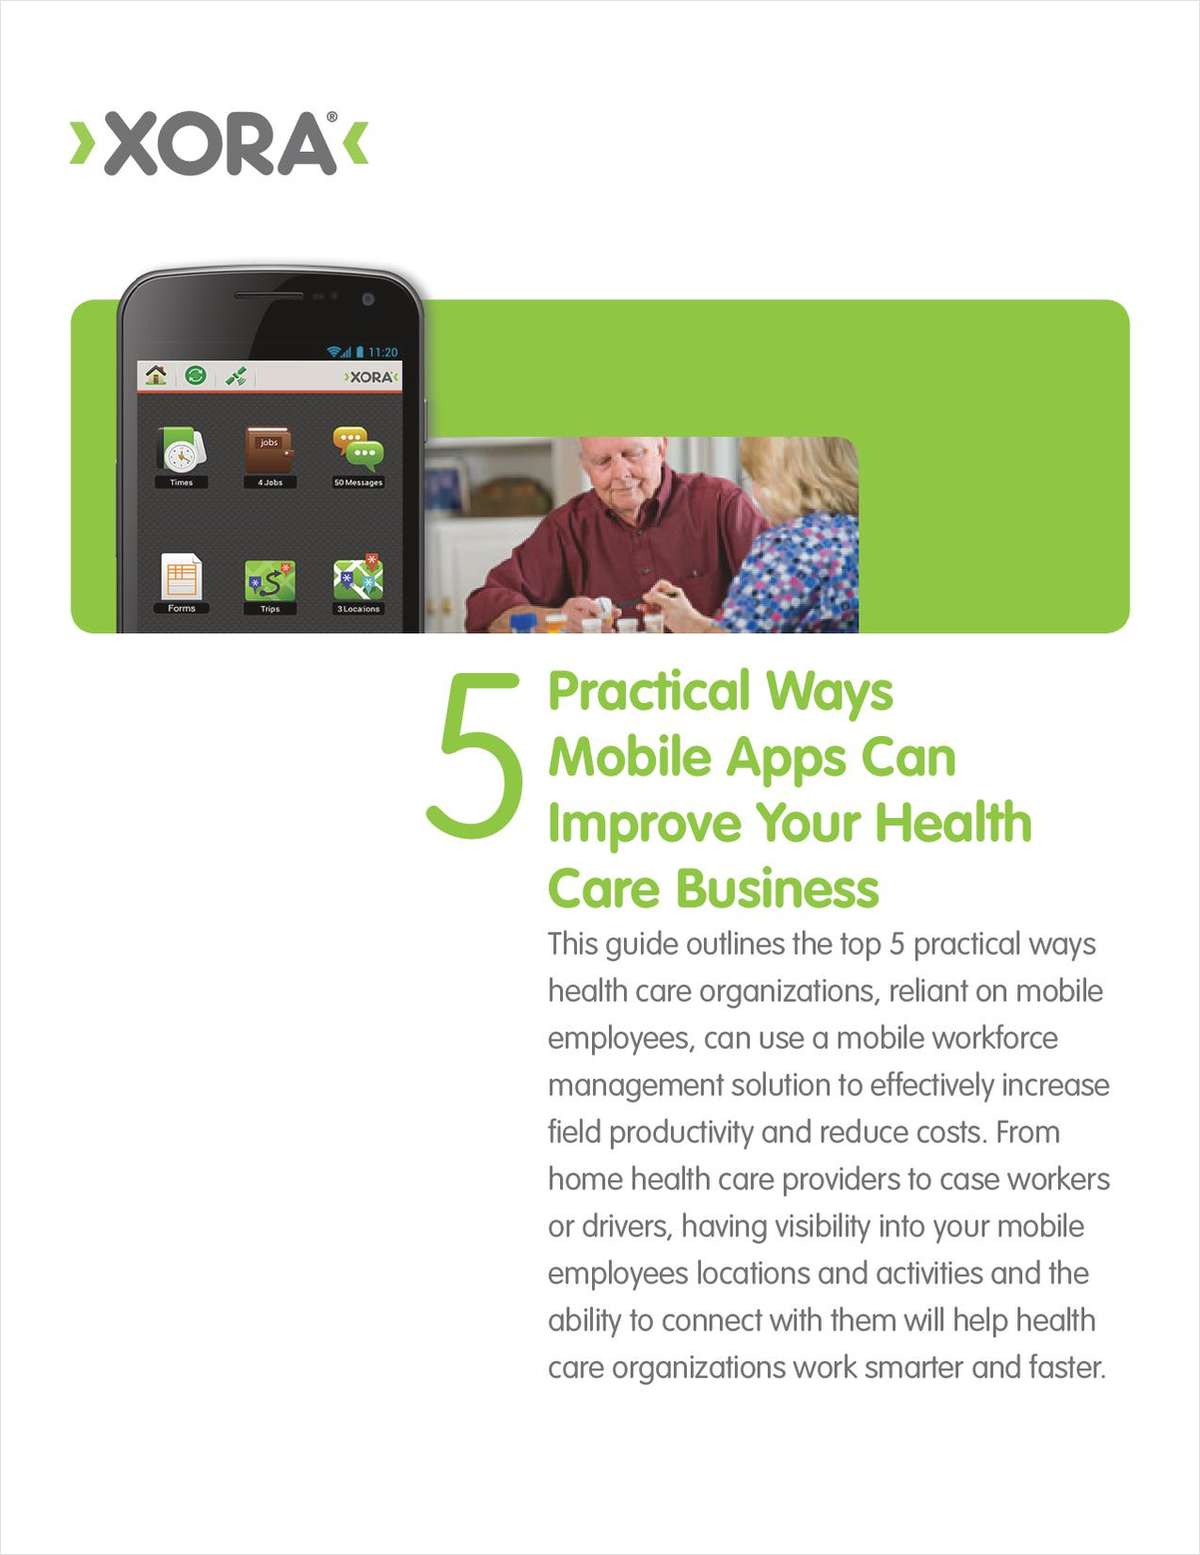 5 Practical Ways Apps Can Streamline Your Healthcare Business